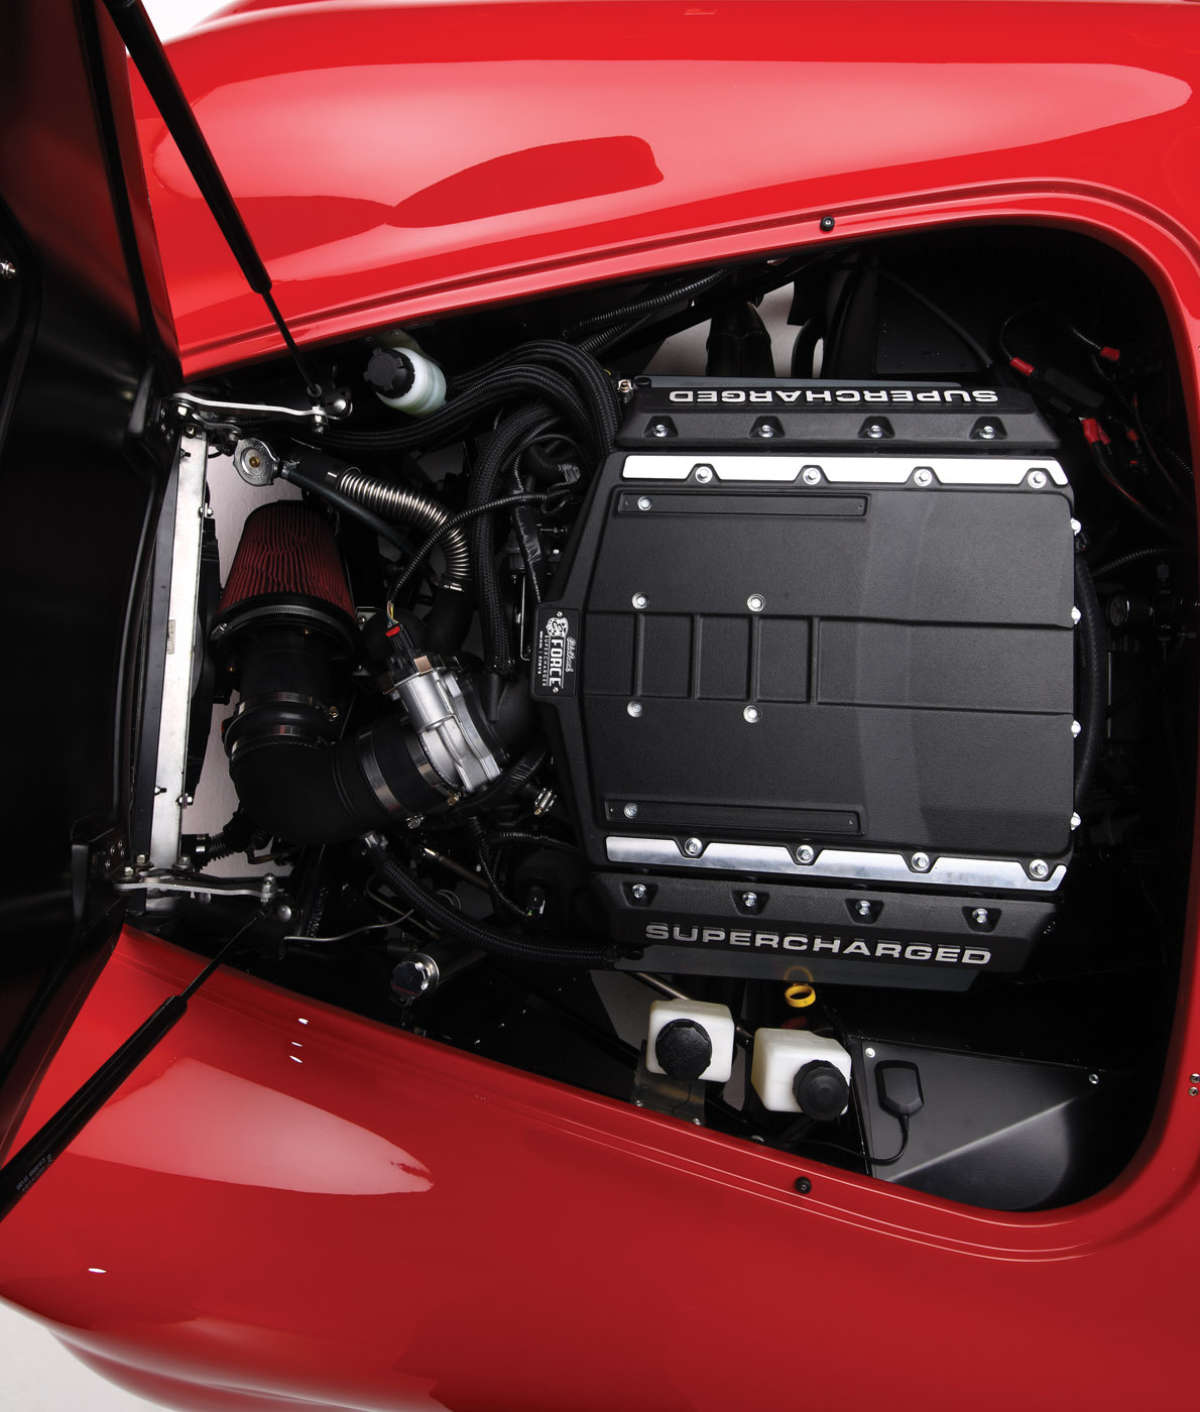 Supercharger Kits For Ford 390: FFR Cobra Boosted By Edelbrock's E-Force…